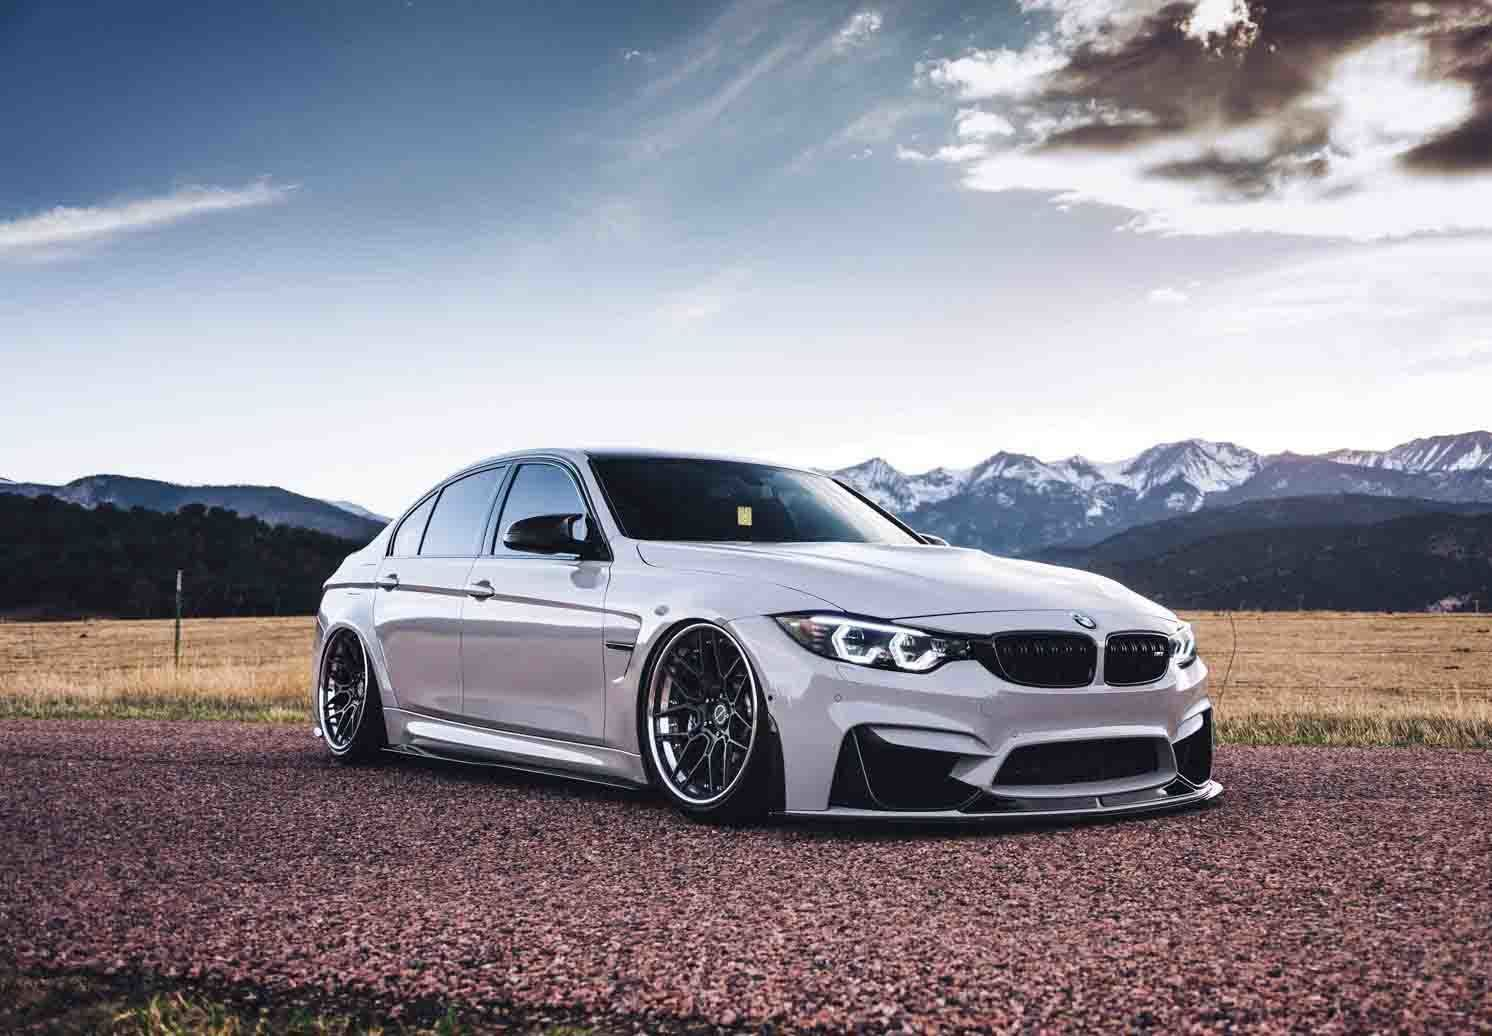 images-products-1-2648-232974936-fashion-grey-bmw-f80-m3-brixton-forged-cm8-targa-series-3-piece-concave-forged-wheels-20-brushed.jpg